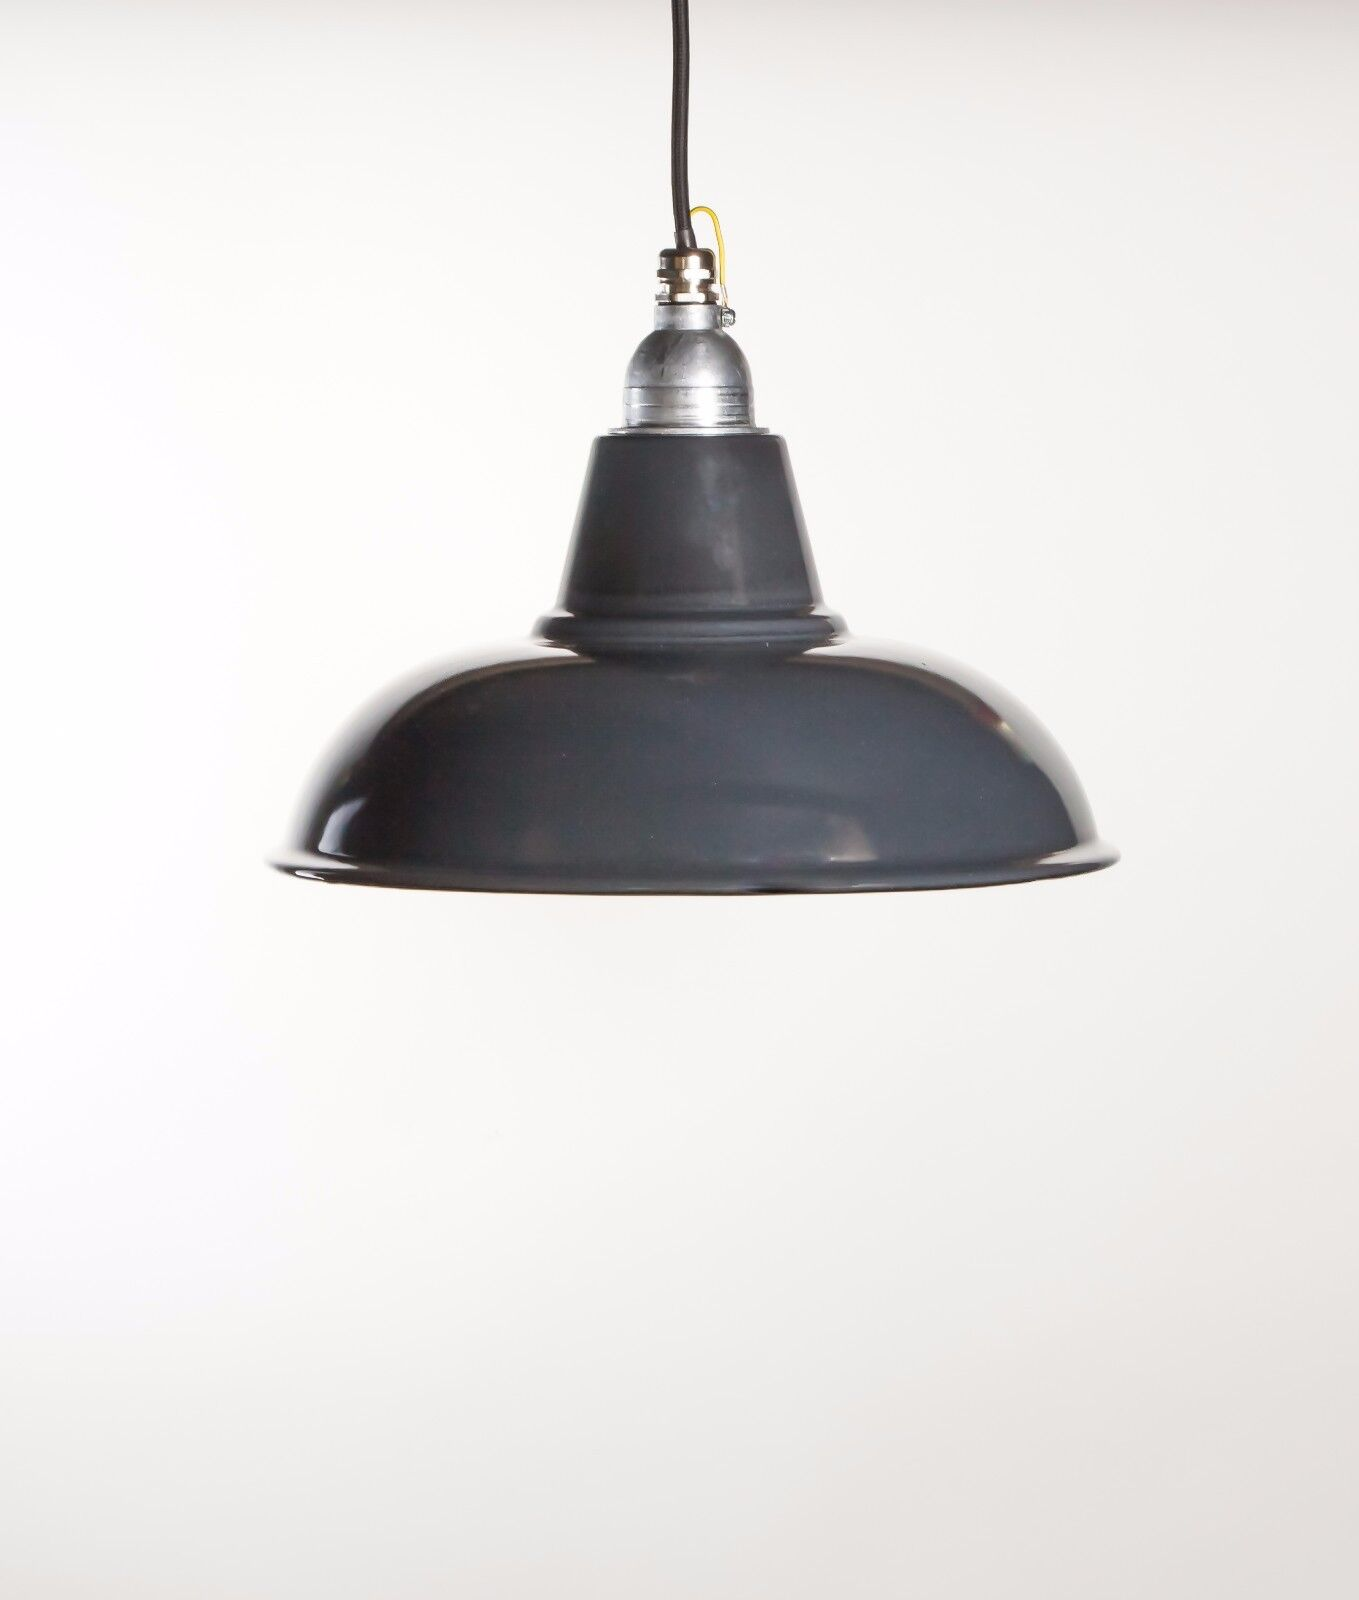 Details About Morley Factory Enamel Ceiling Pendant Light Vintage